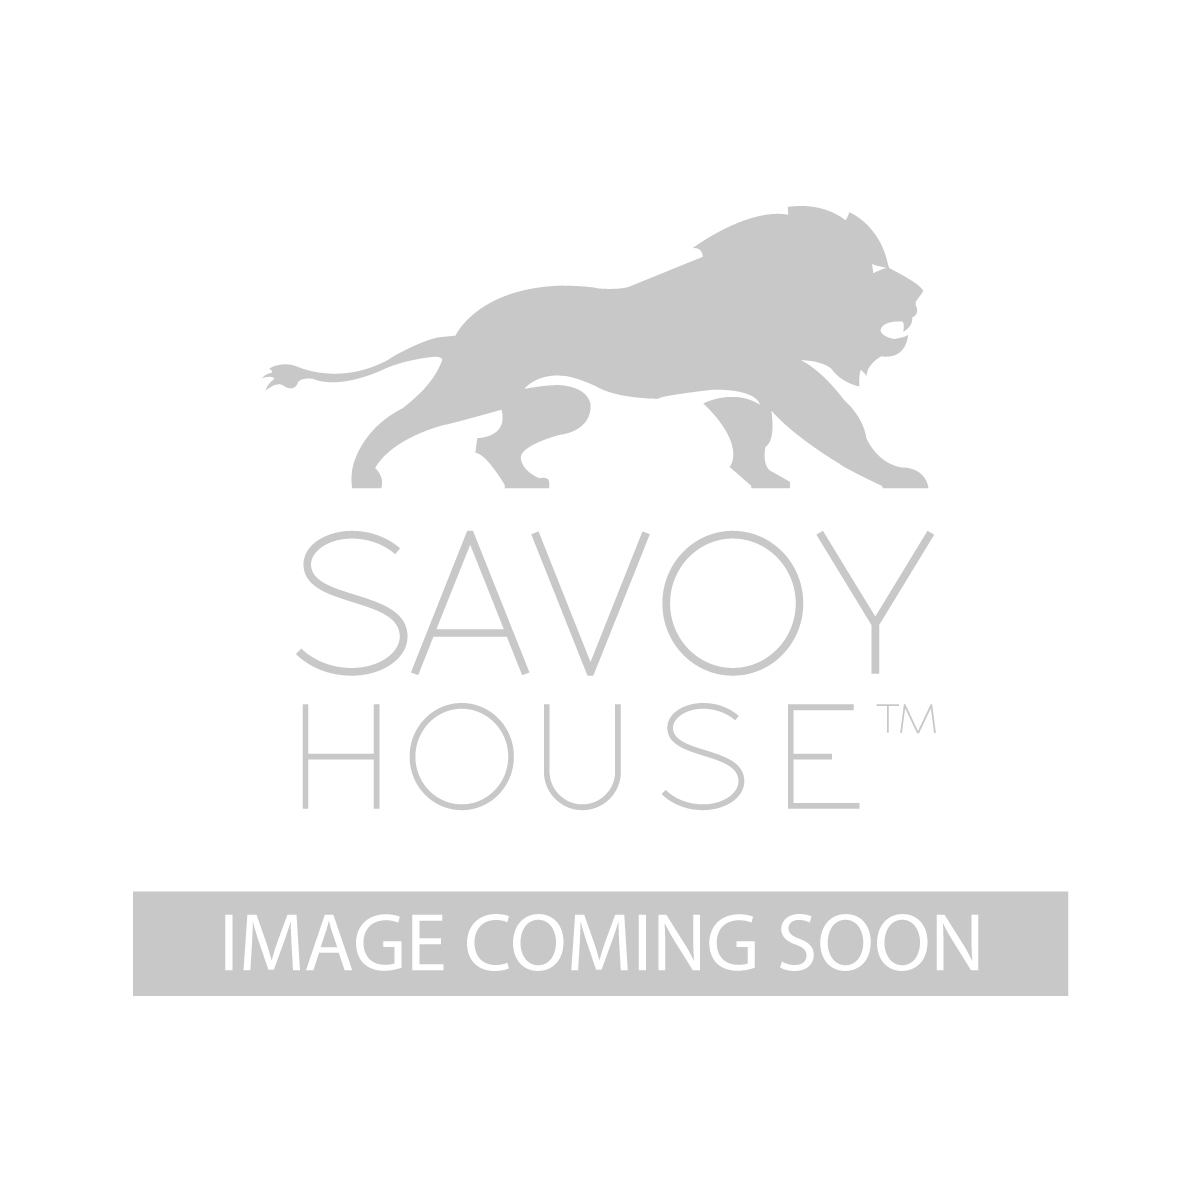 5 3551 25 Barrister Hanging Lantern By Savoy House